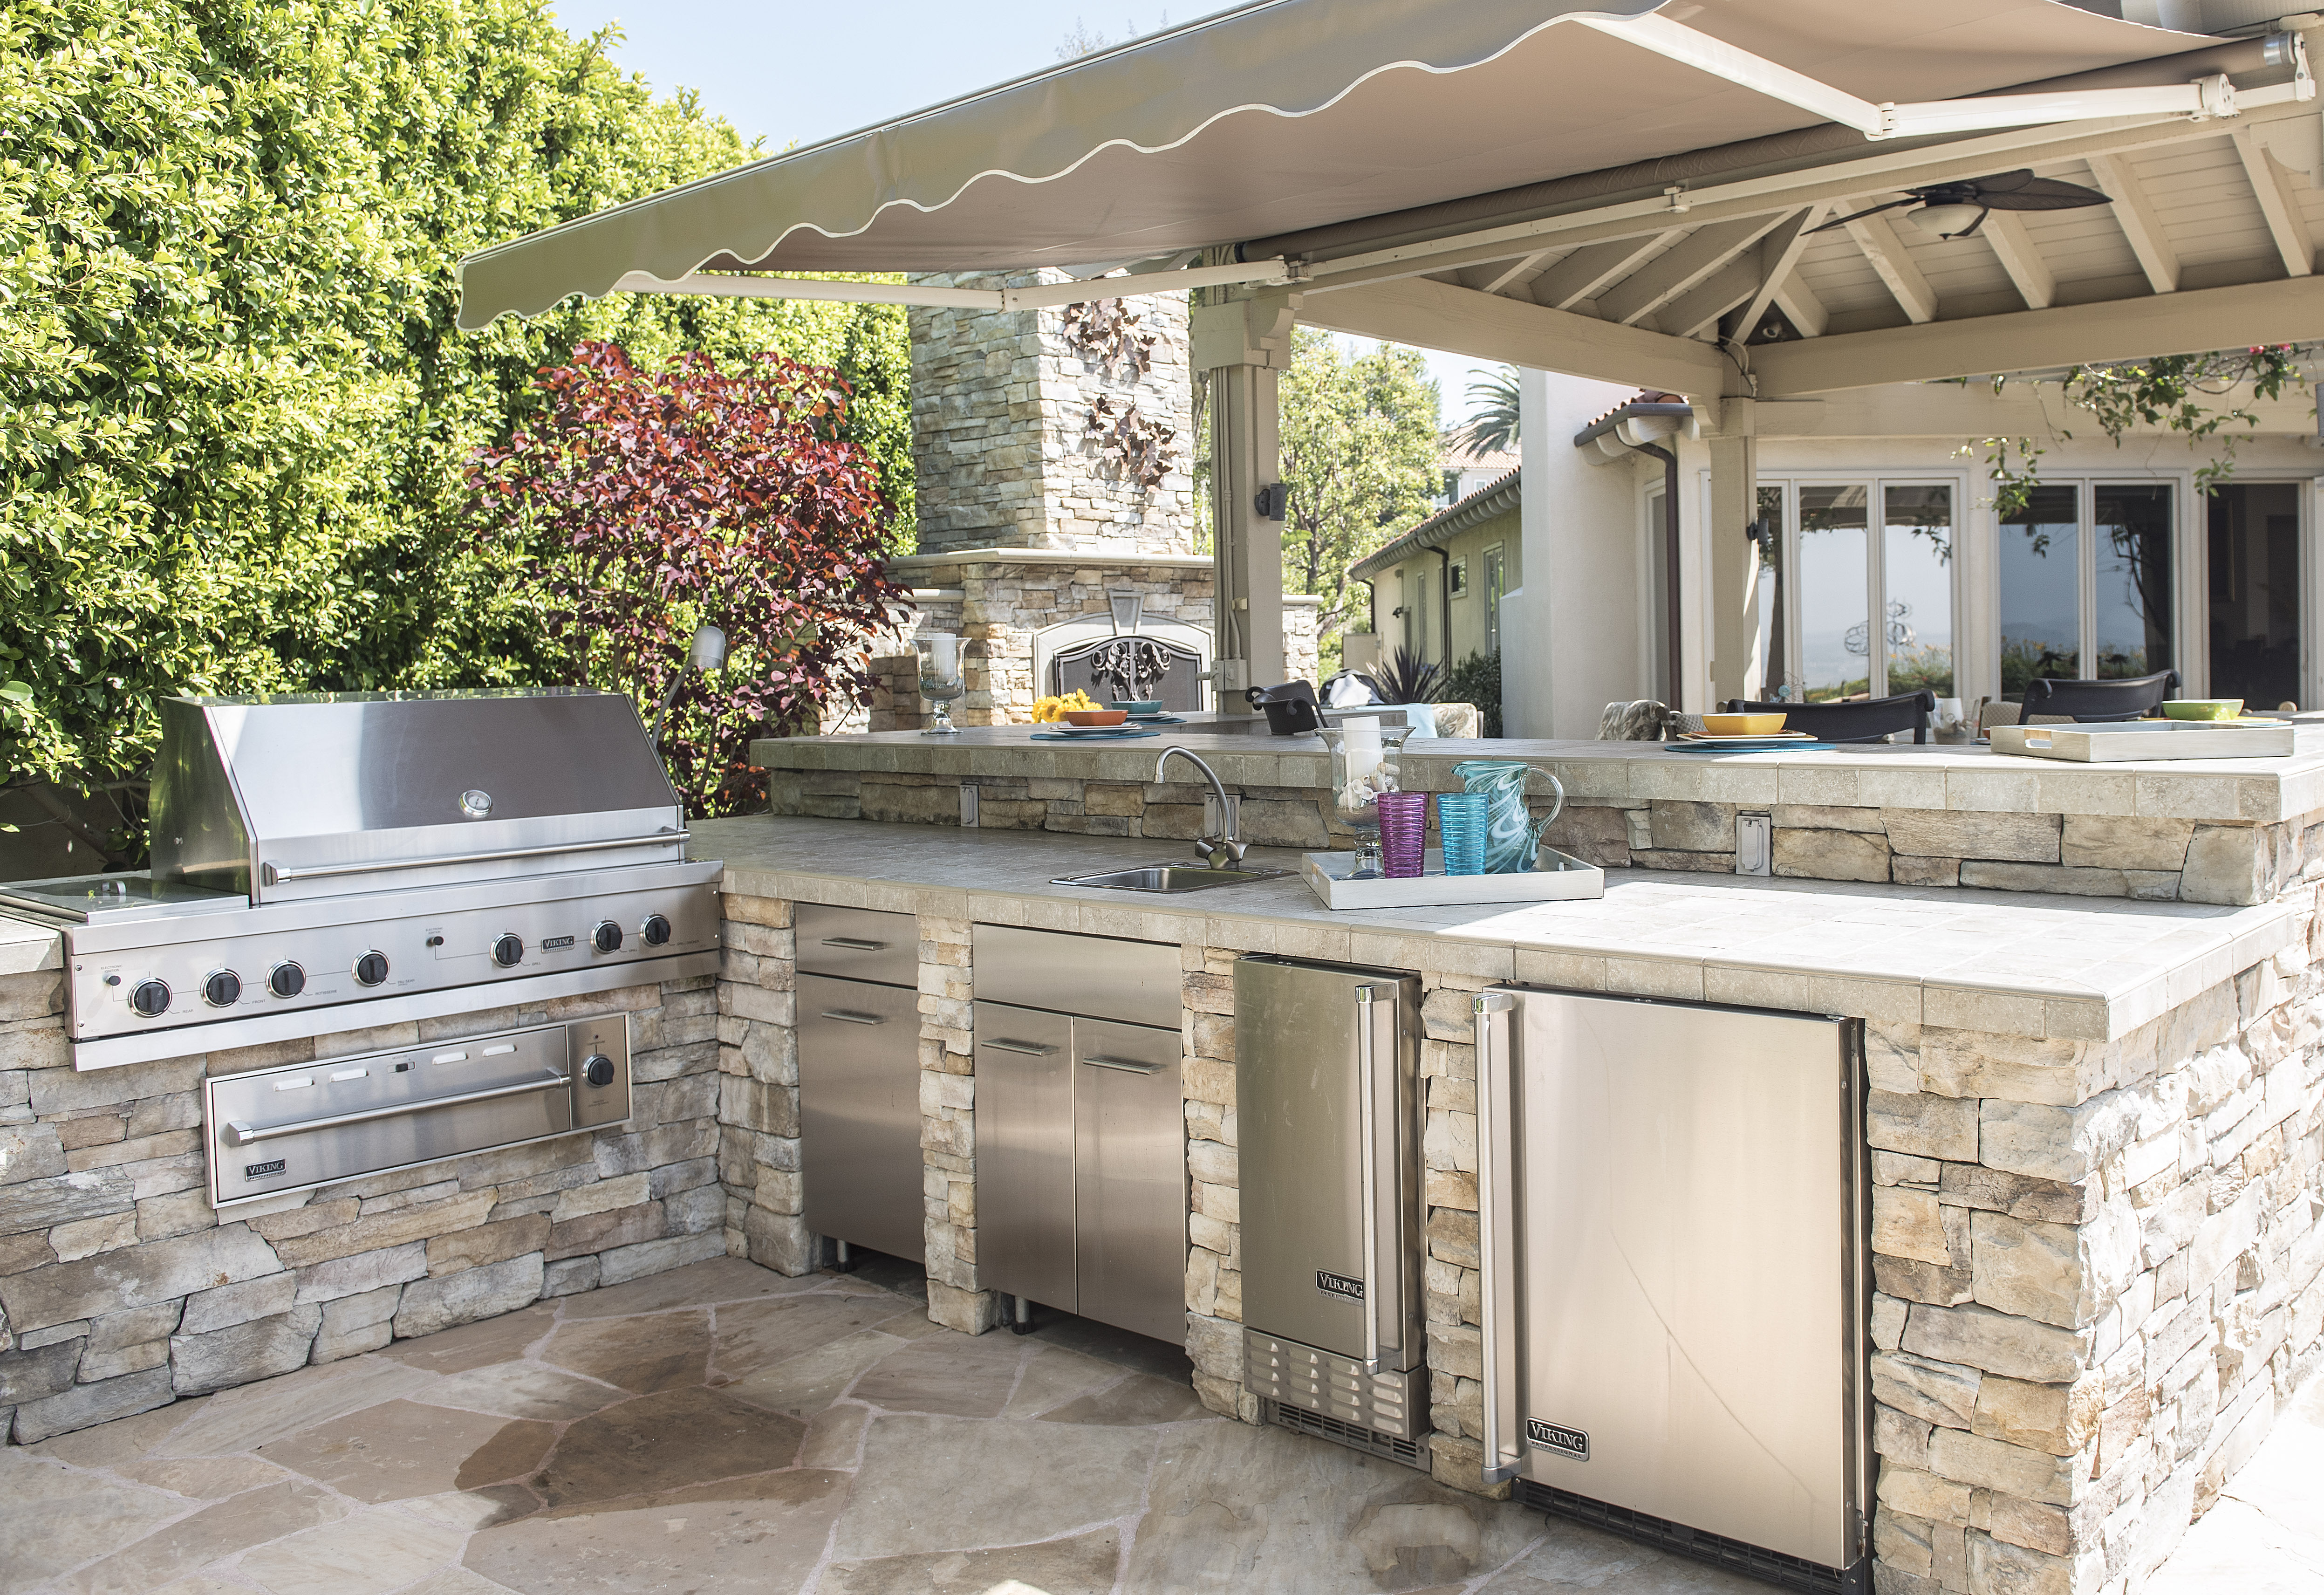 an outdoor kitchen at the home of mary and michael fry in IFQWEAL